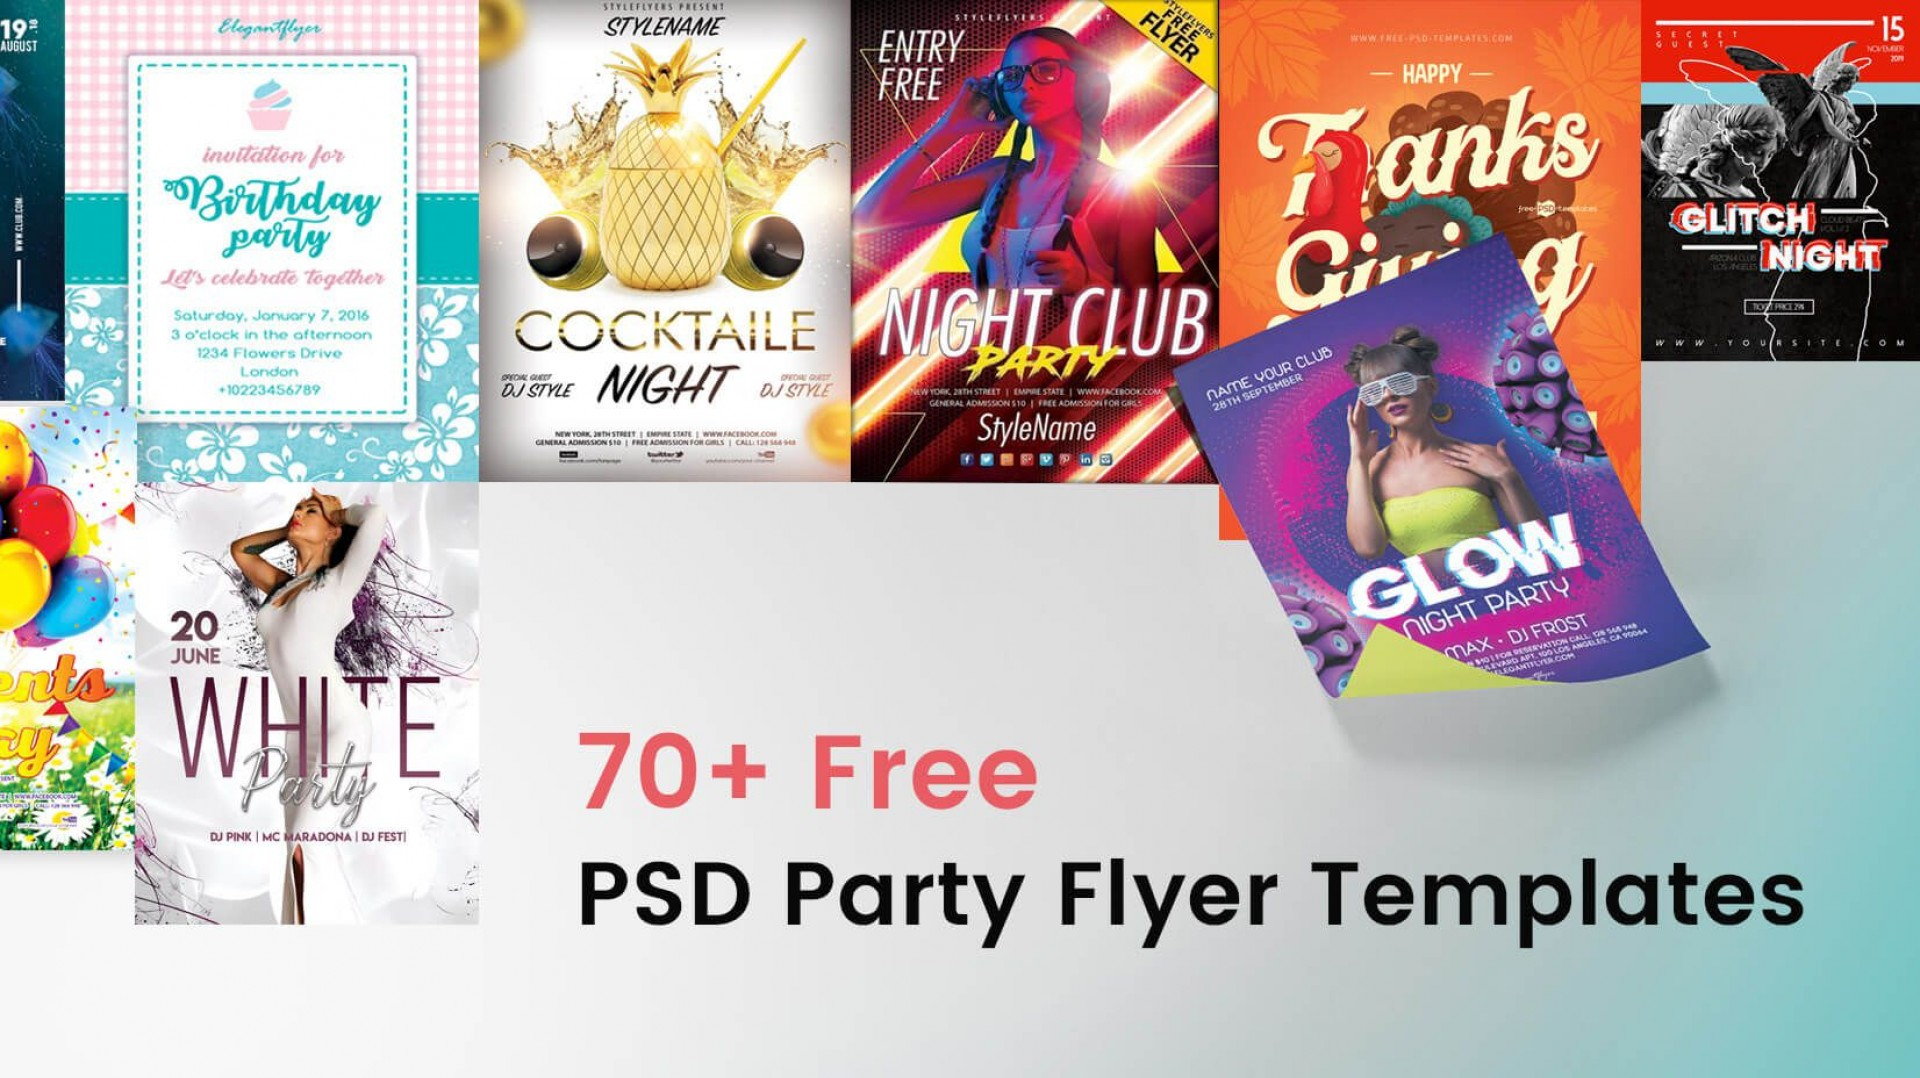 008 Awesome Free School Disco Flyer Template Picture  Templates Poster1920